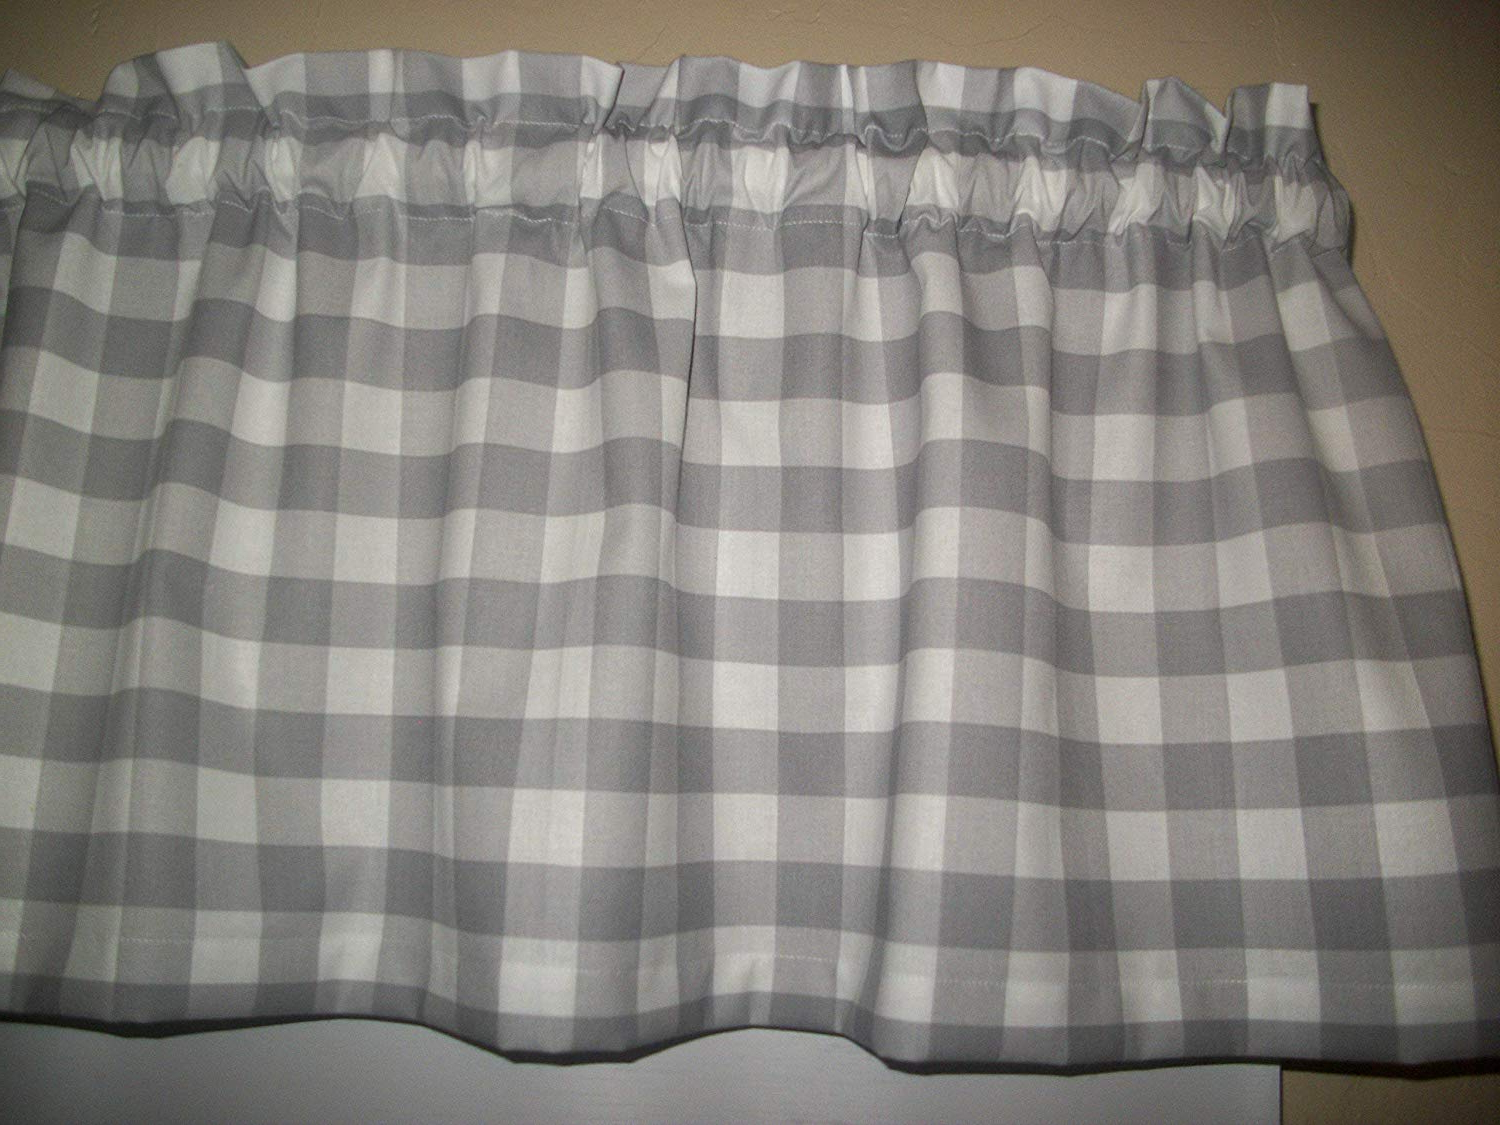 Gray Grey White Buffalo Plaid Checked Checks Farmhouse Country Farm Kitchen  Fabric Decor Window Treatment Curtain Topper Valance With Well Known Barnyard Buffalo Check Rooster Window Valances (View 16 of 20)